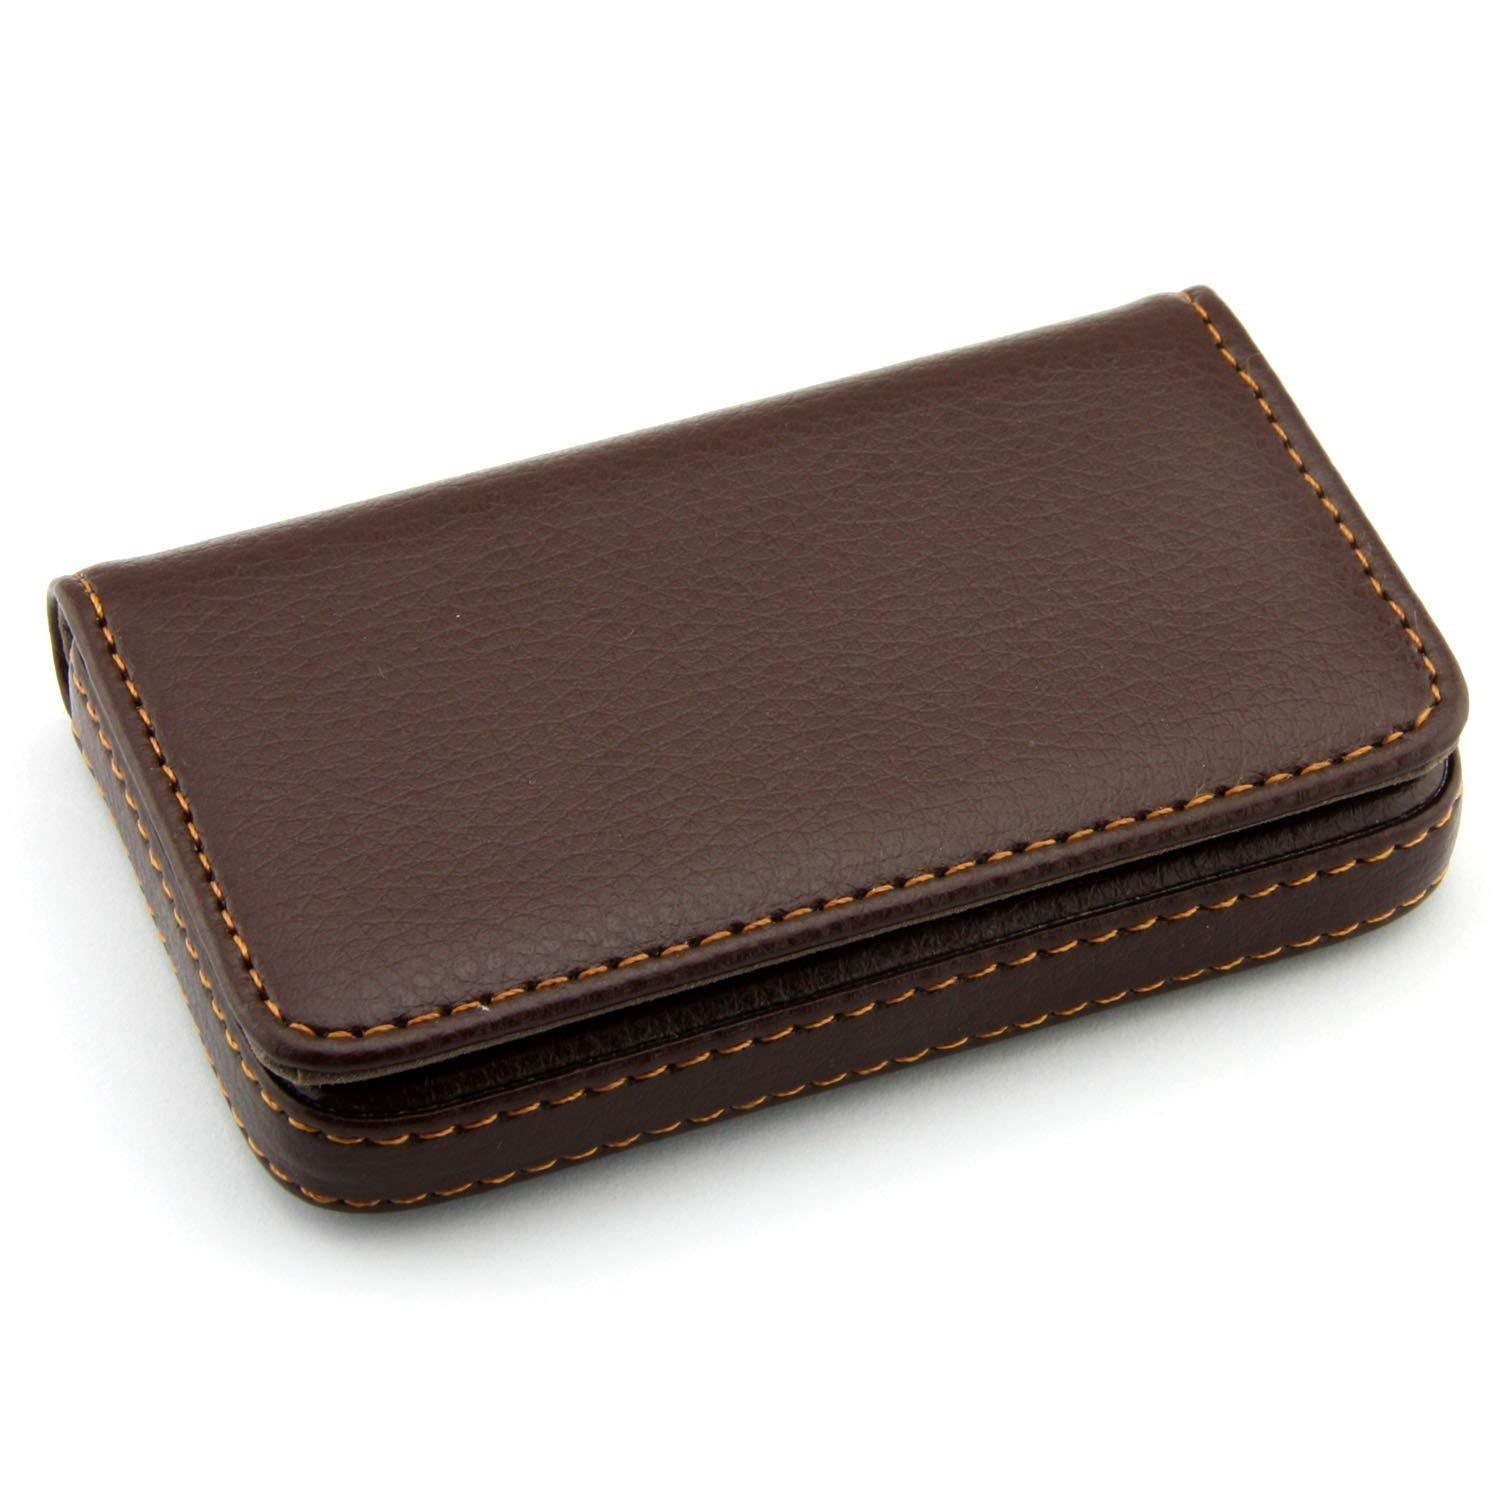 Storite Pocket Sized Stitched Leather Credit Debit Visiting Card Holder (Coffee Brown) product image